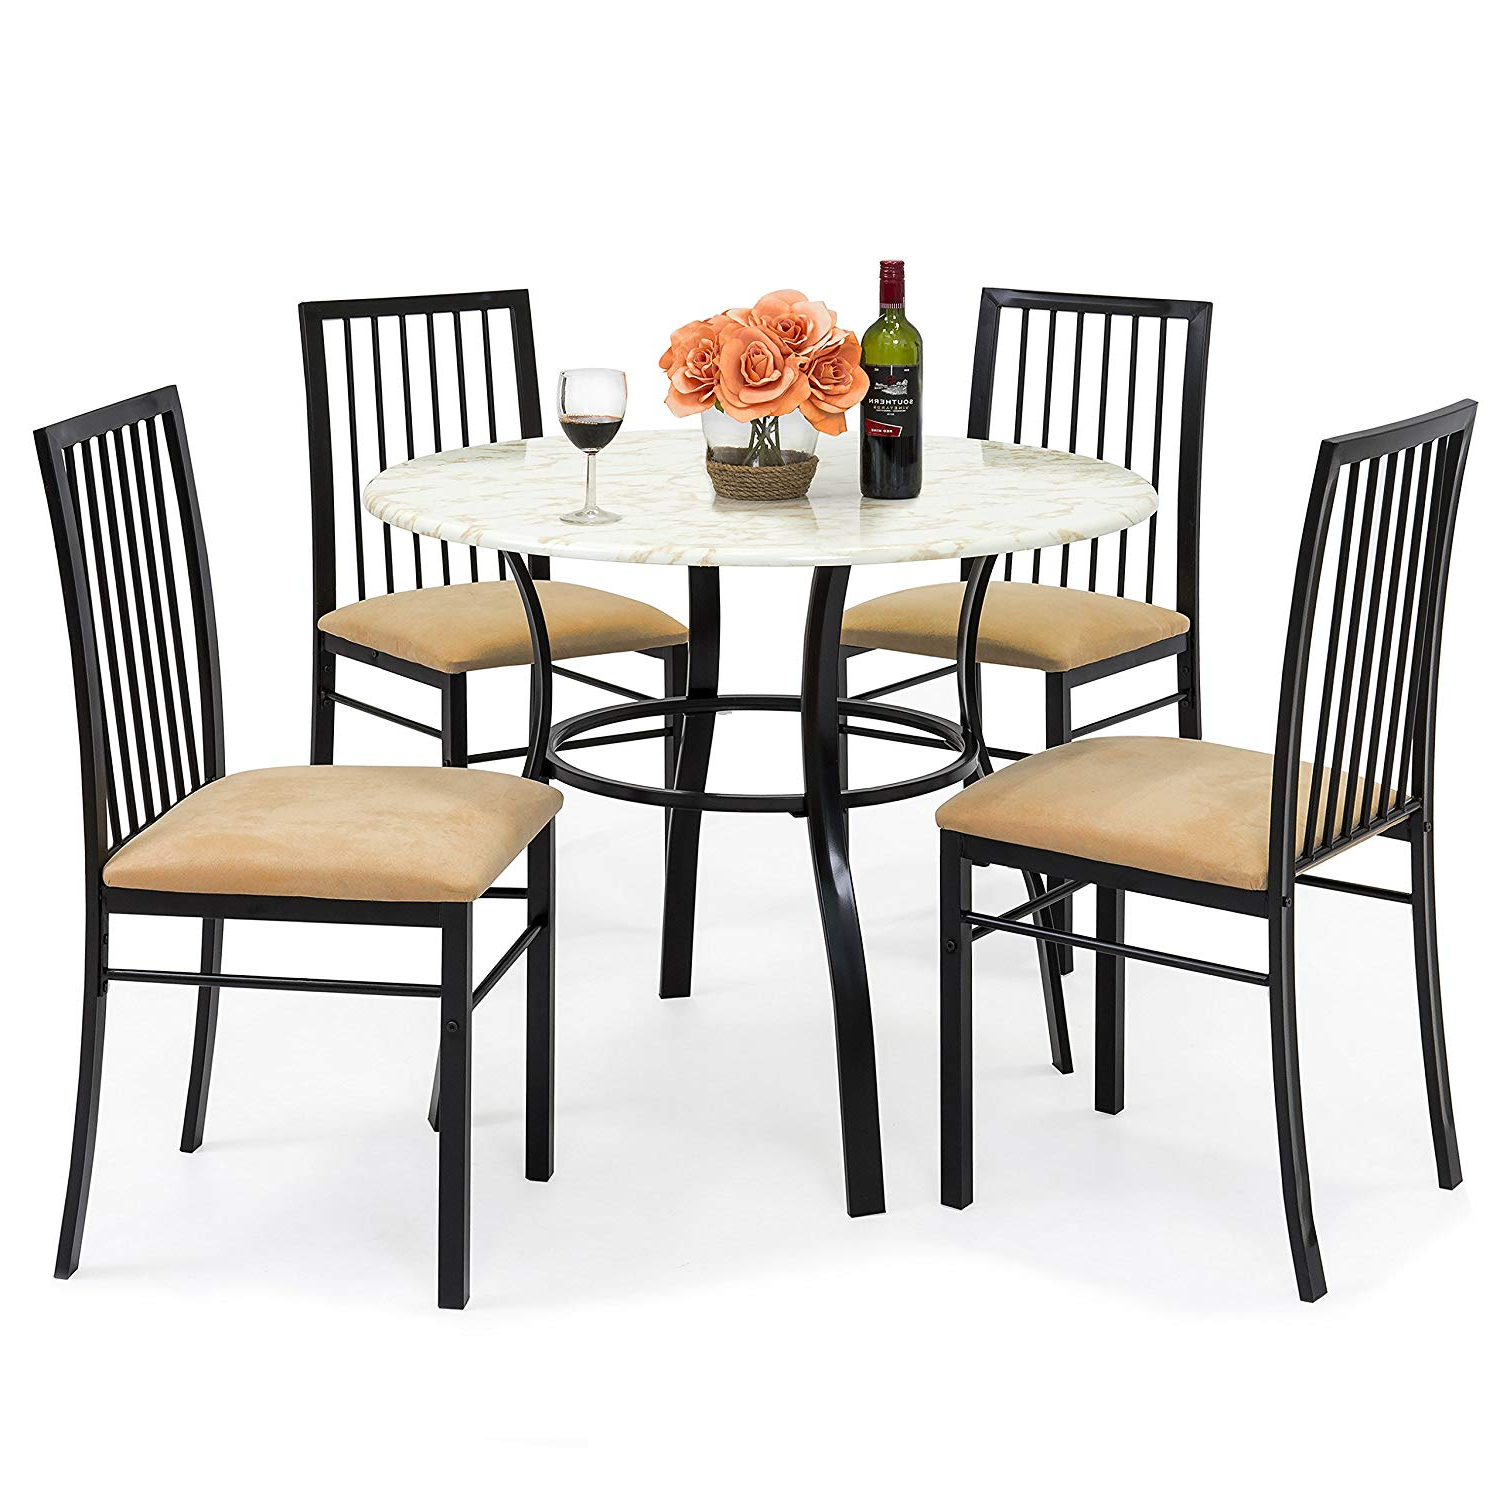 Evellen 5 Piece Solid Wood Dining Sets (Set Of 5) For Popular Best Choice Products 5 Piece Faux Marble Top Dining Table And Chairs Set (View 3 of 20)